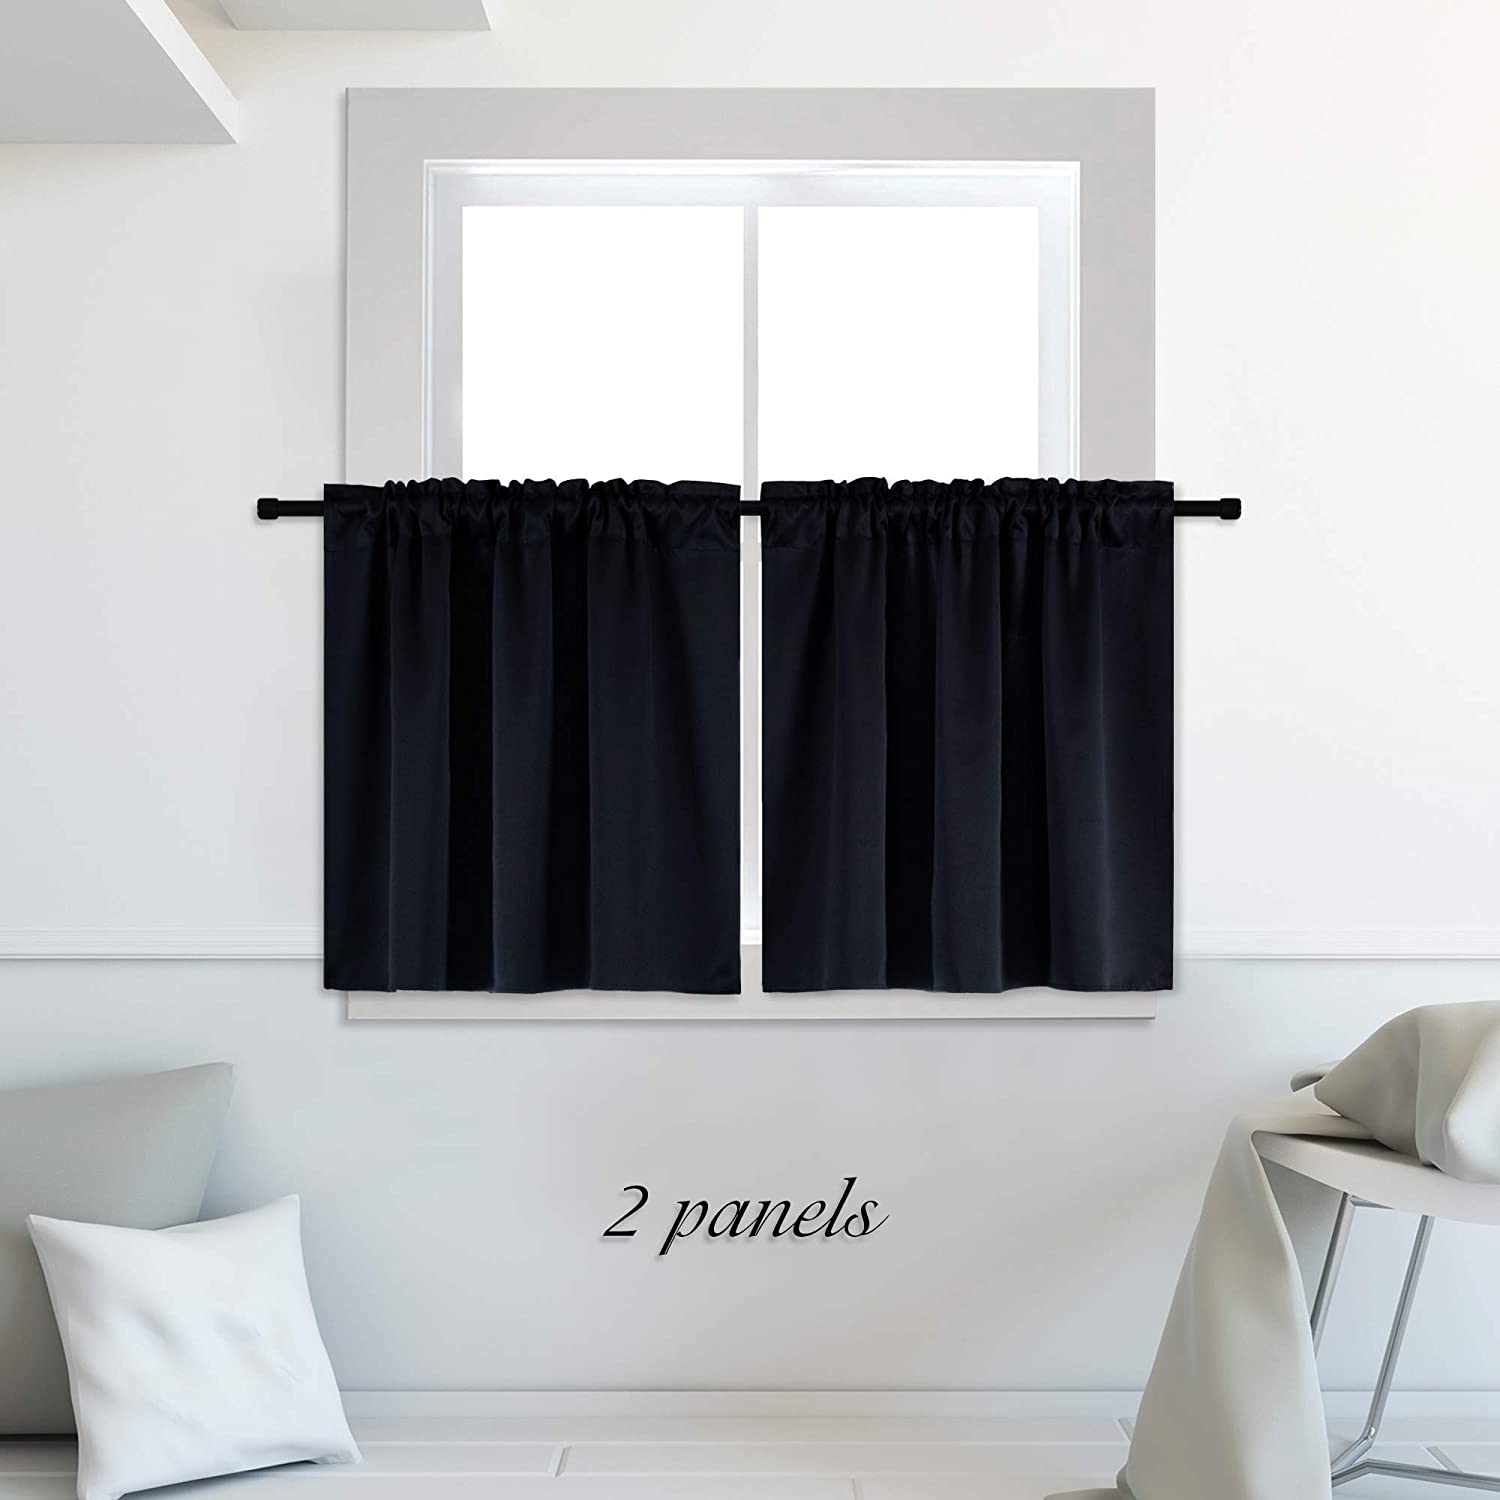 DONREN Blackout Energy Saving Kitchen Curtains,Thermal Insulating Blackout Rod Pocket Curtain Tiers for Bathroom (42 by 30 inches, Set of 2 Panels,Black)